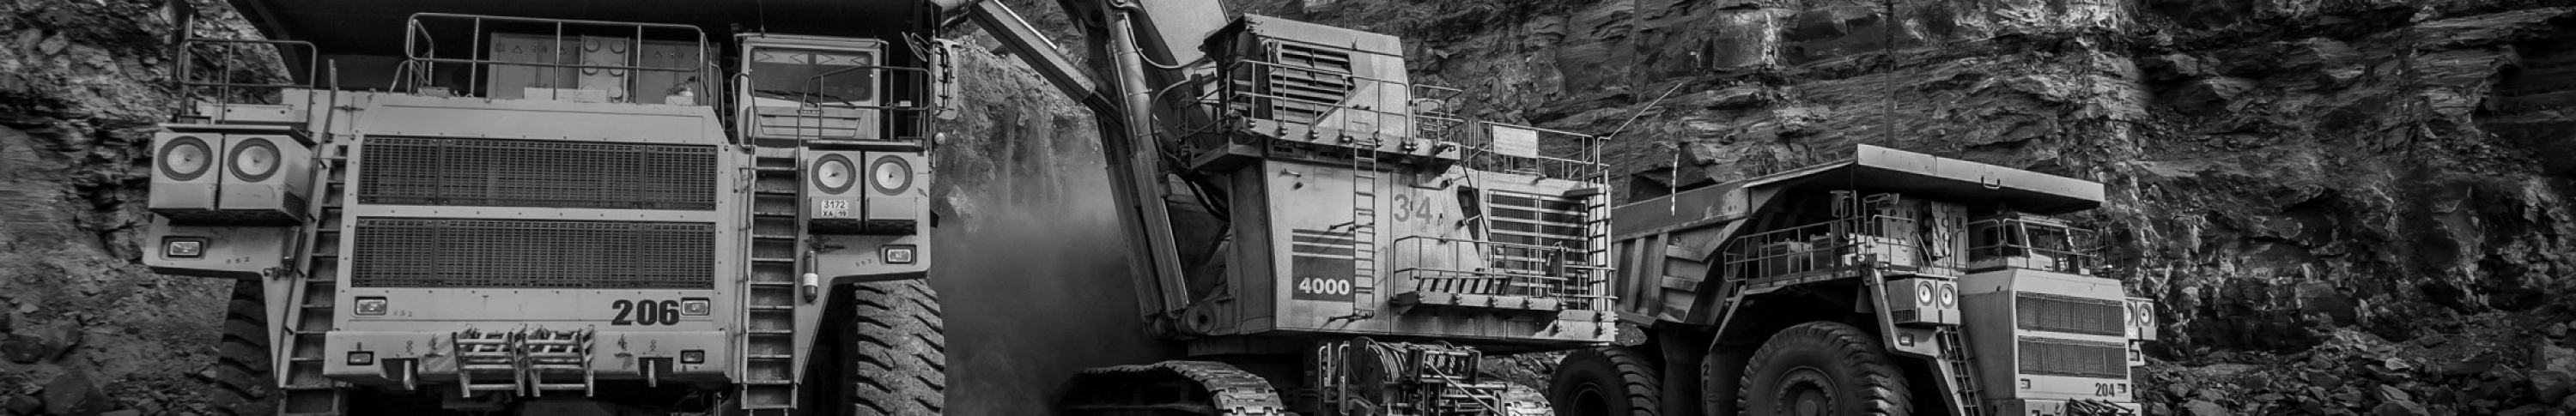 Sears Mining Products. Picture of three large mining machines.